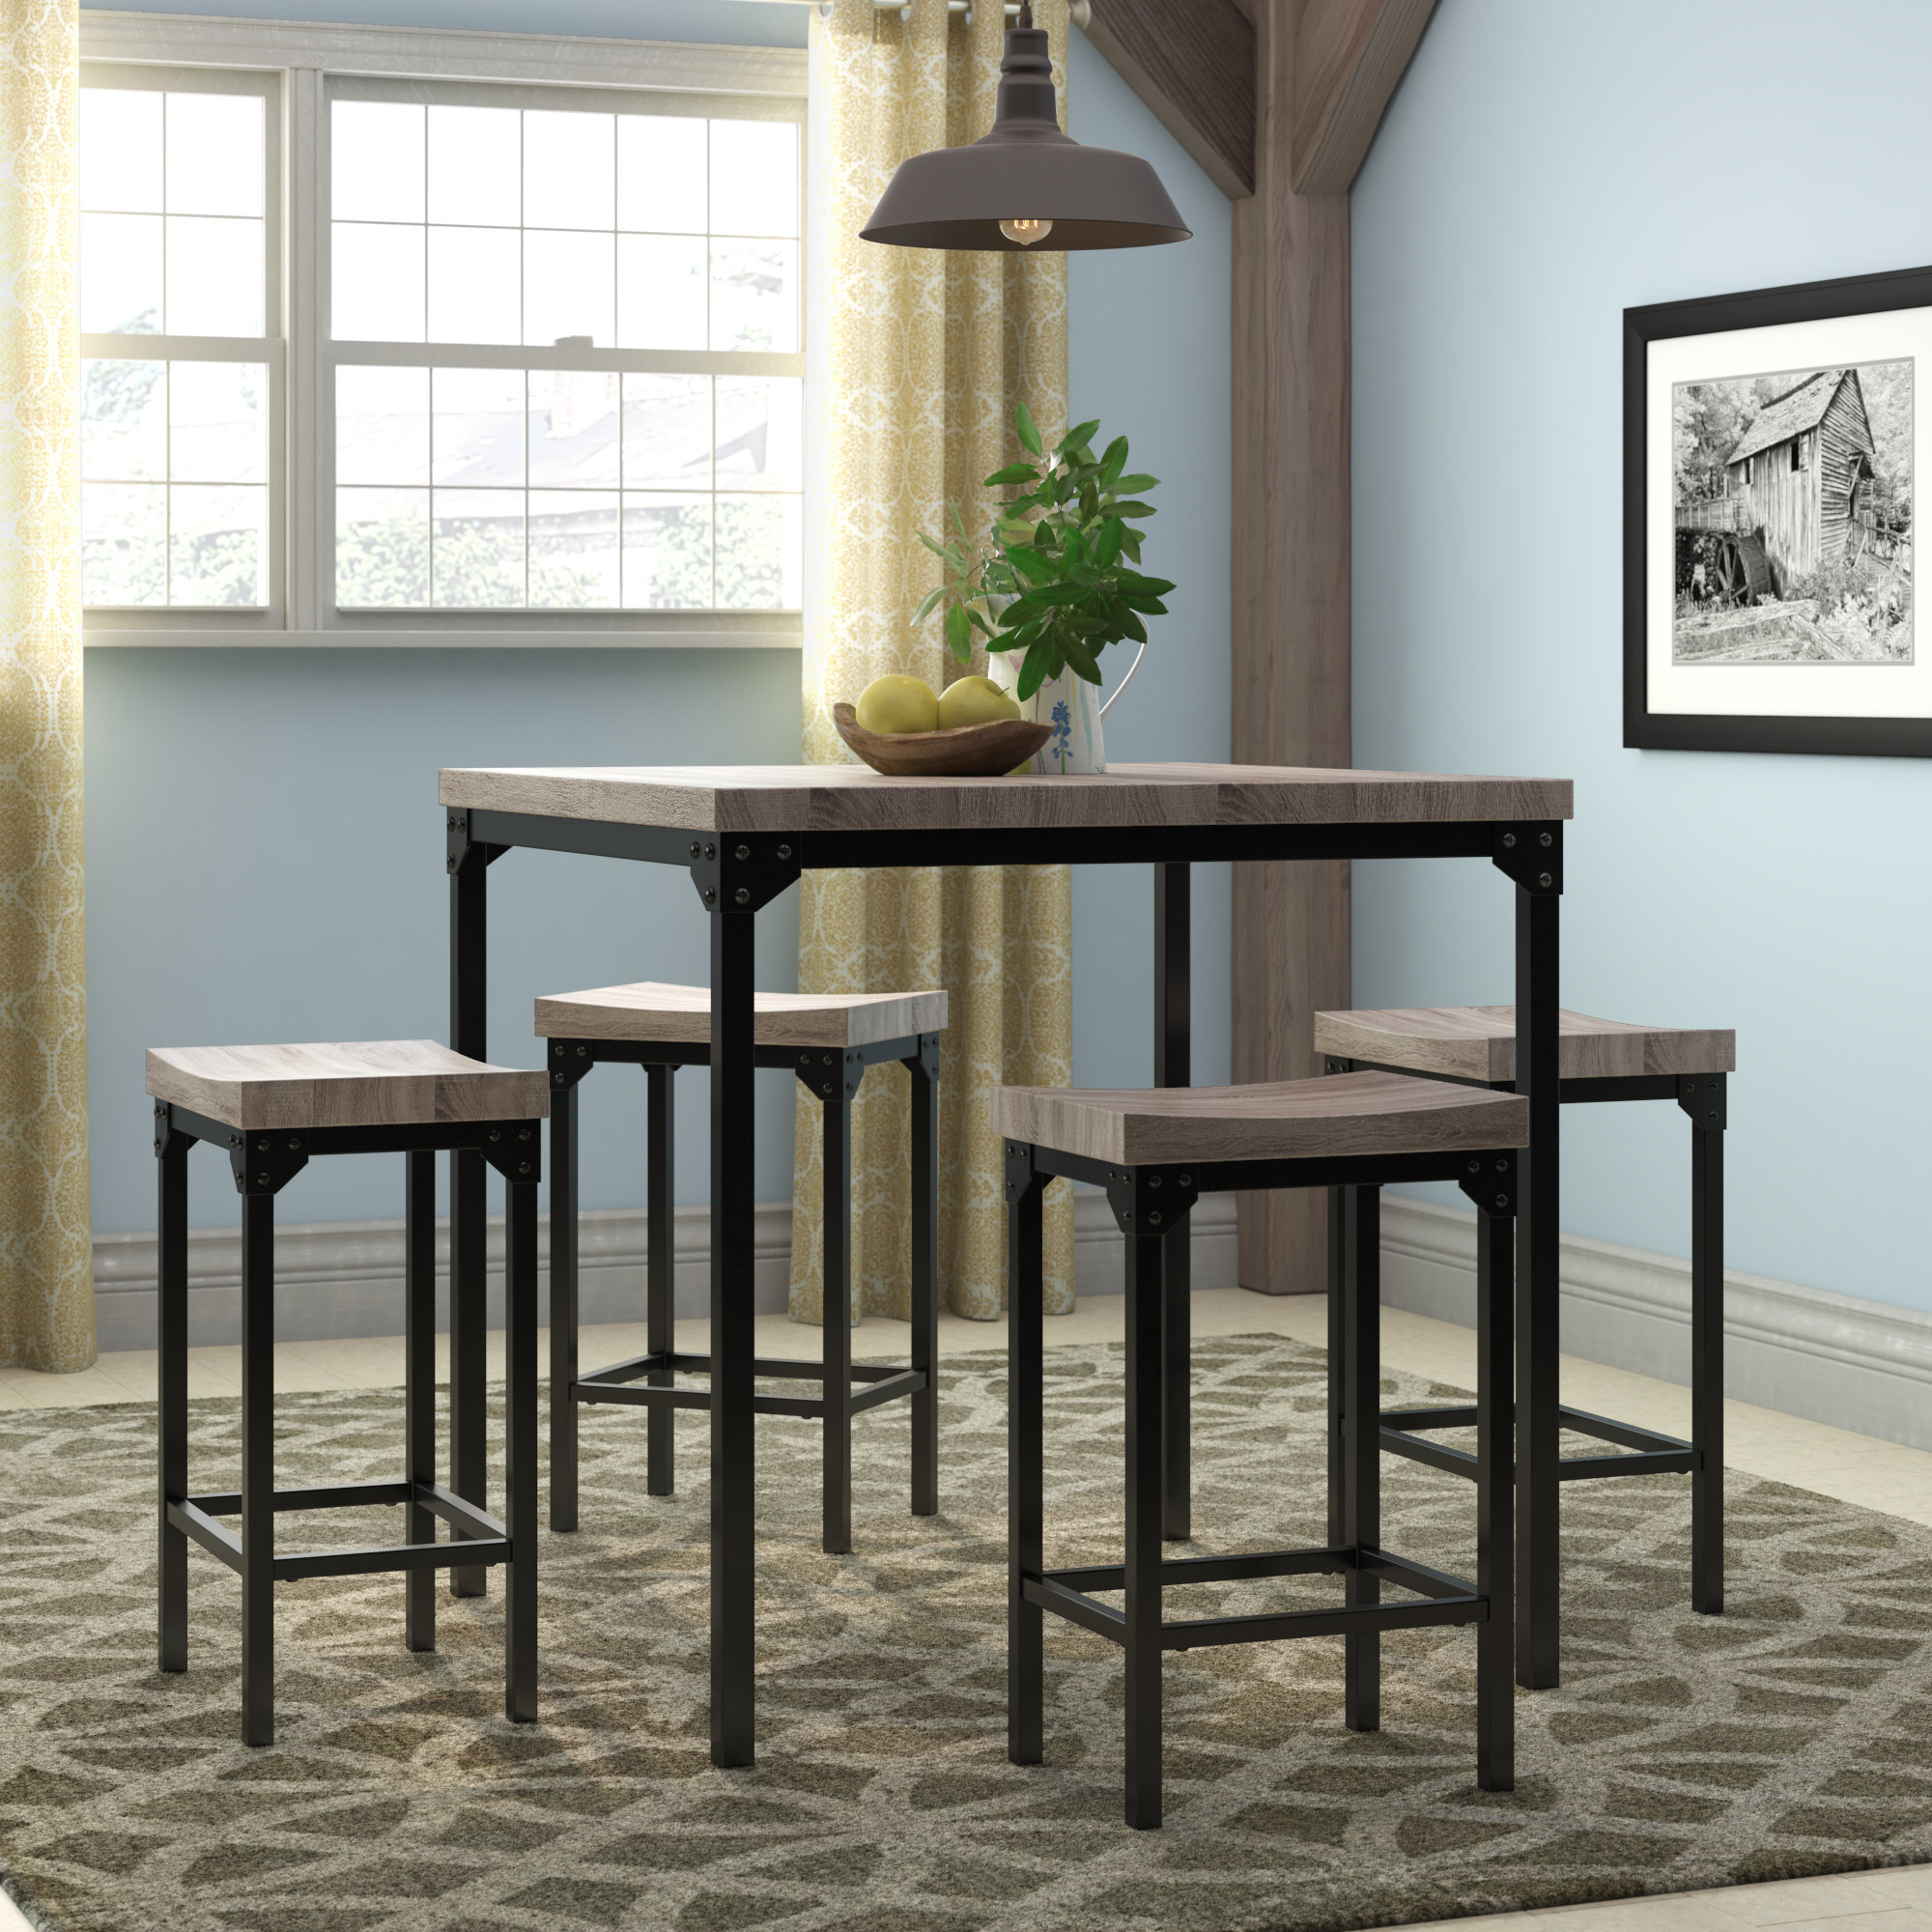 Wegner 5 Piece Counter Height Dining Set Within Recent Sheetz 3 Piece Counter Height Dining Sets (View 19 of 20)